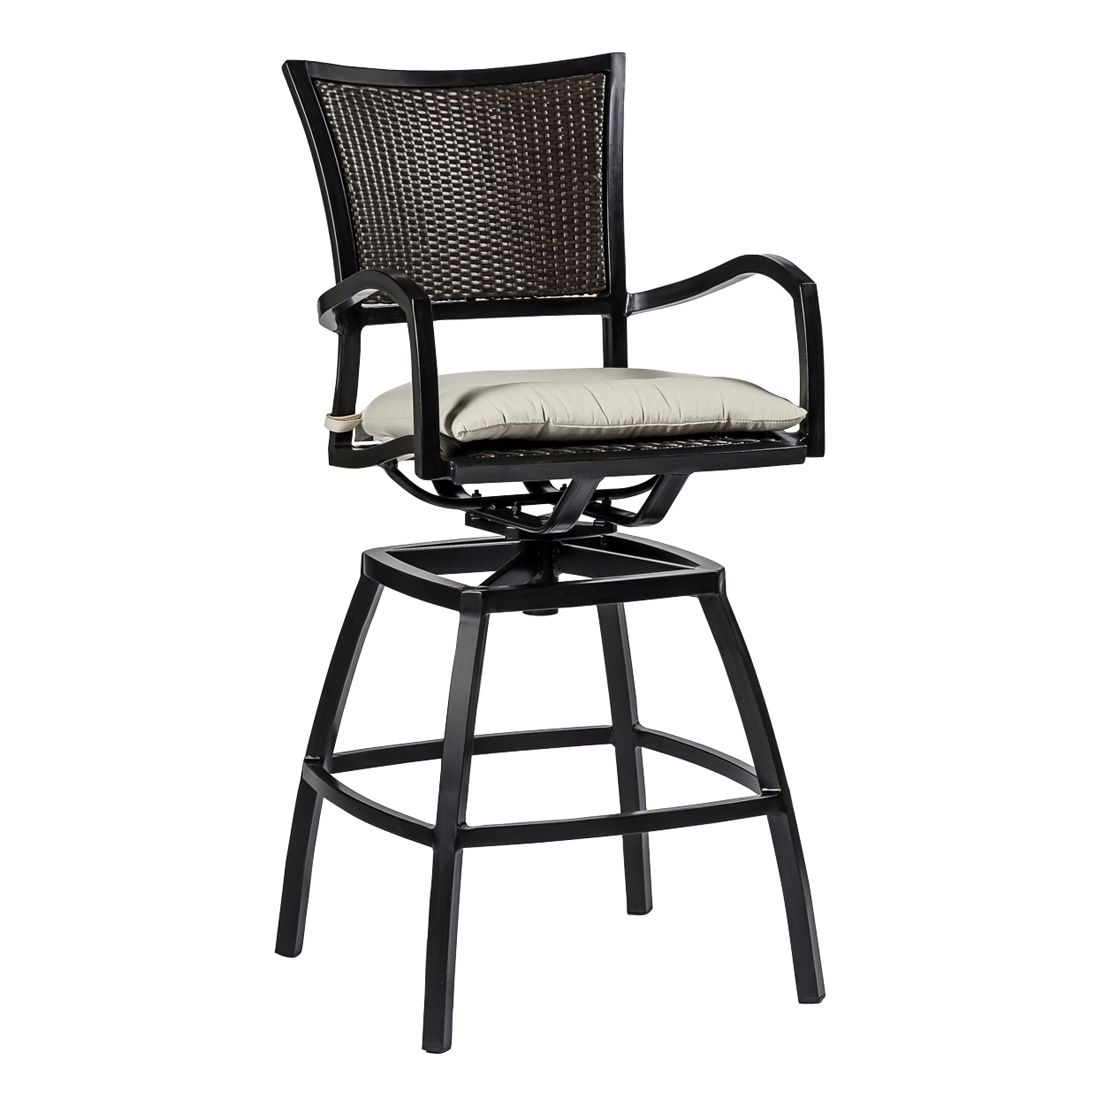 Swivel Bar Chairs Aire Swivel Barstool Outdoor Furniture Bar Stools